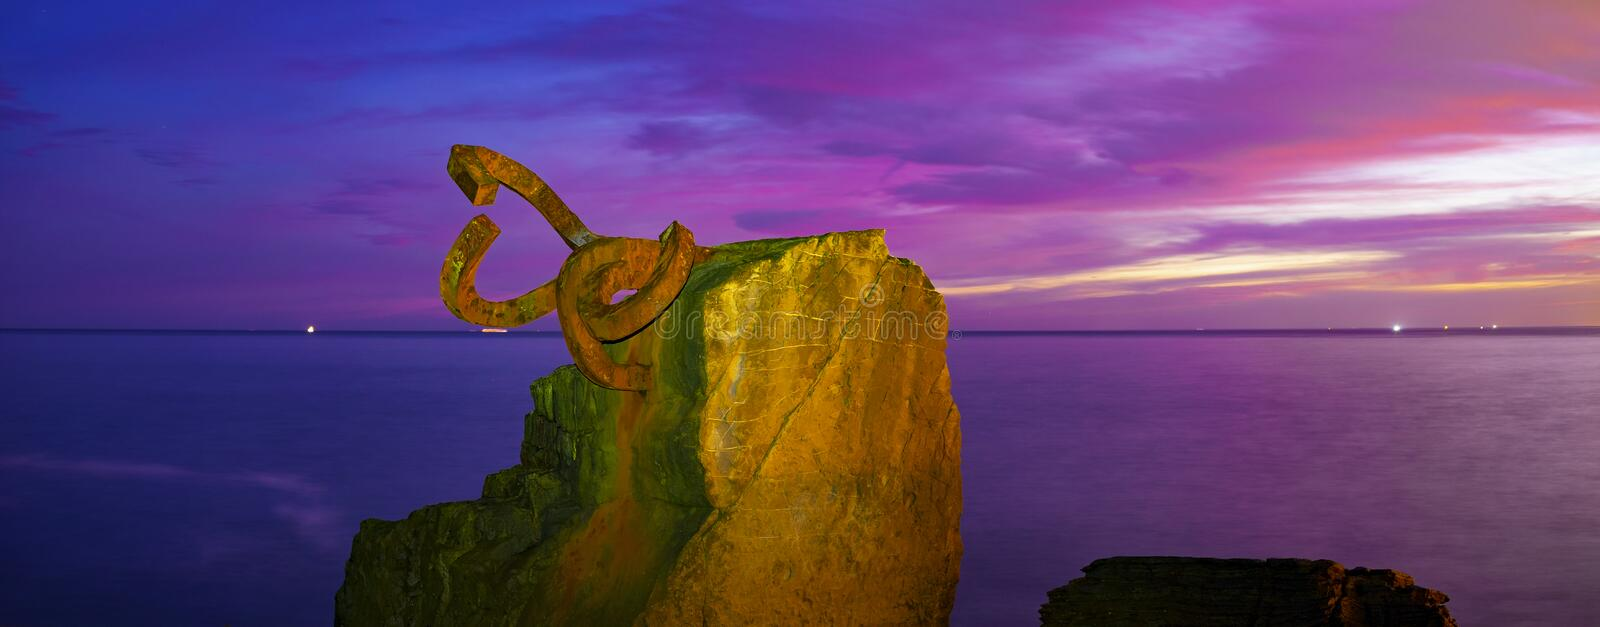 Dawn in the Comb of the Wind Peine del Viento in Spanish sculpture in San Sebastian royalty free stock photo